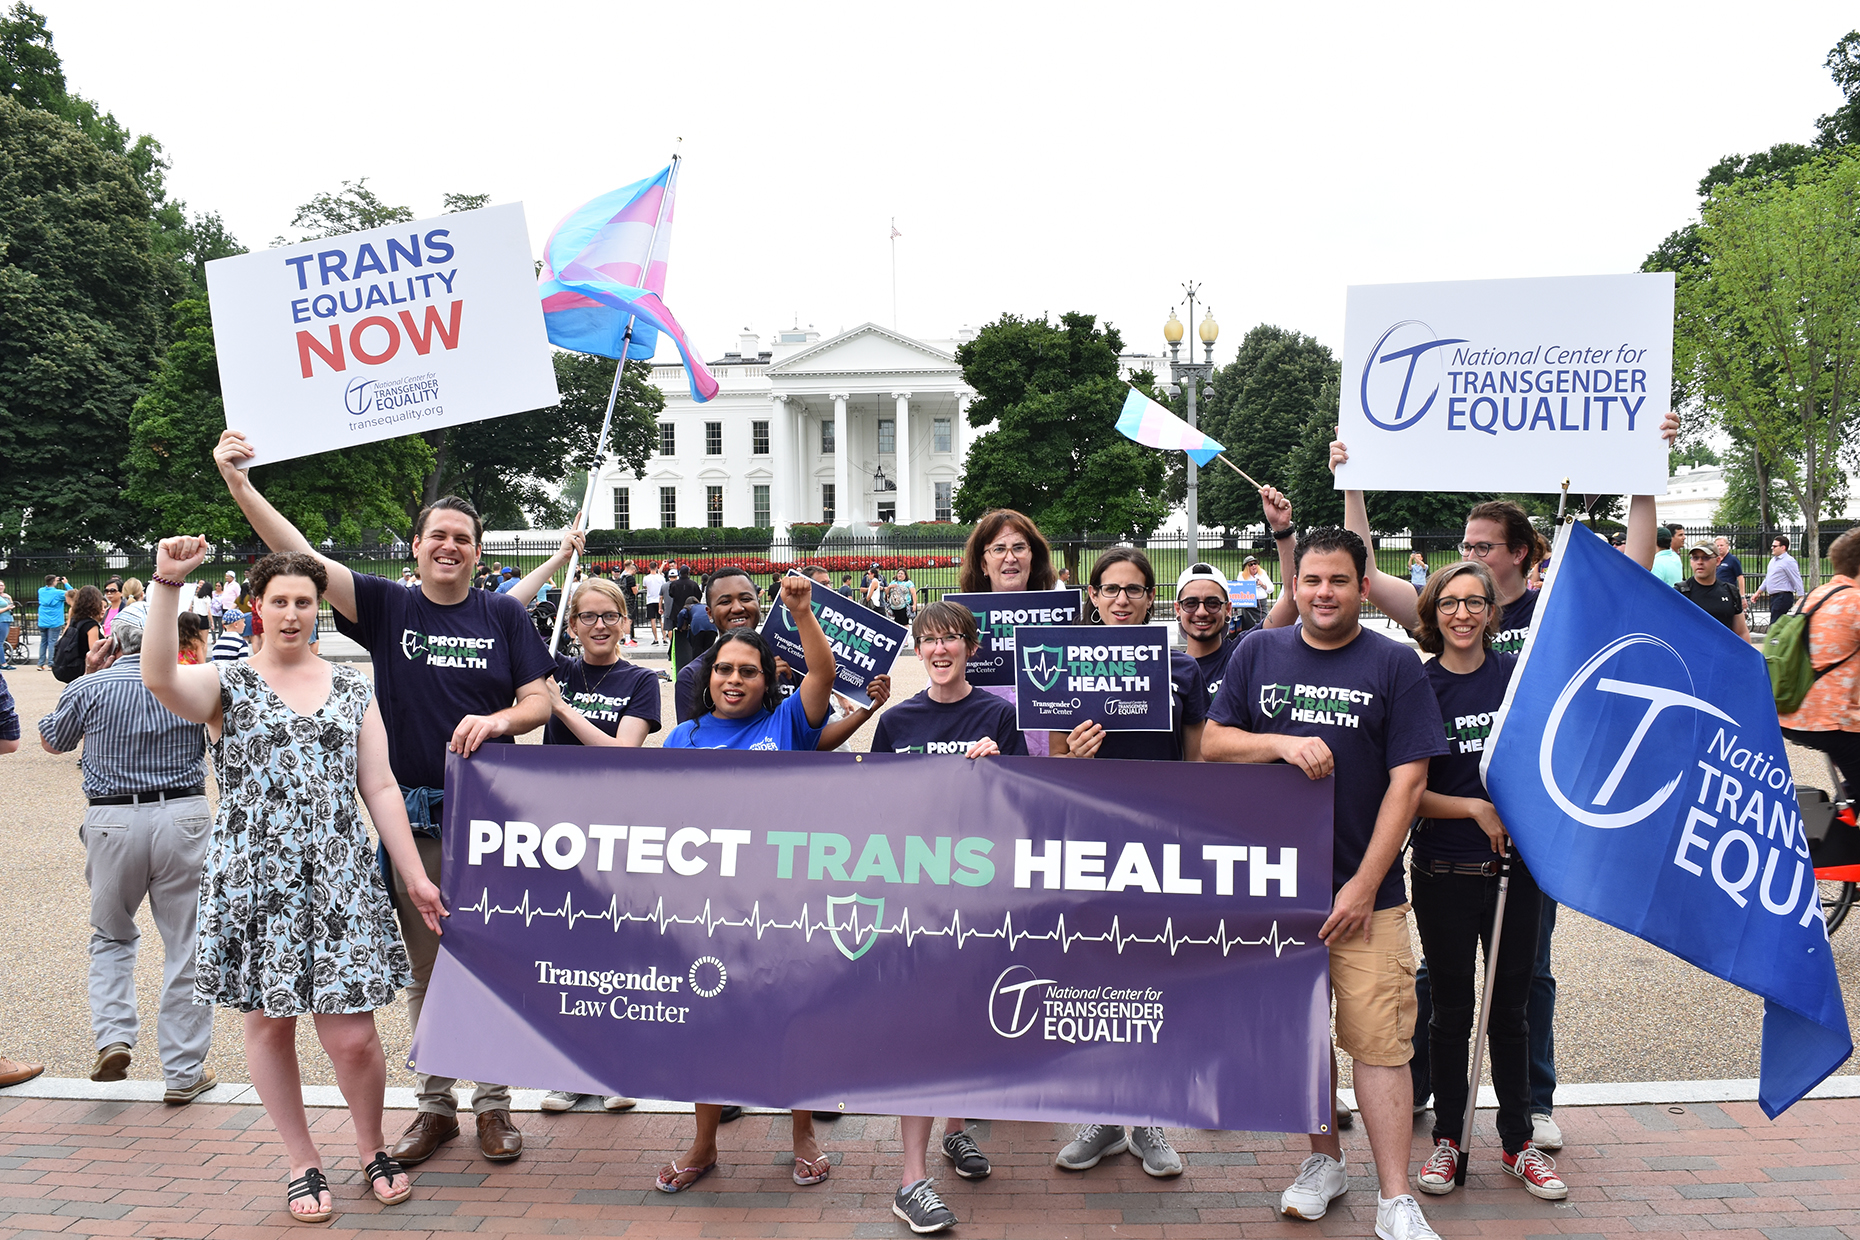 Members of National Center For Transgender Equality protest at President's Park in Washington, D.C.